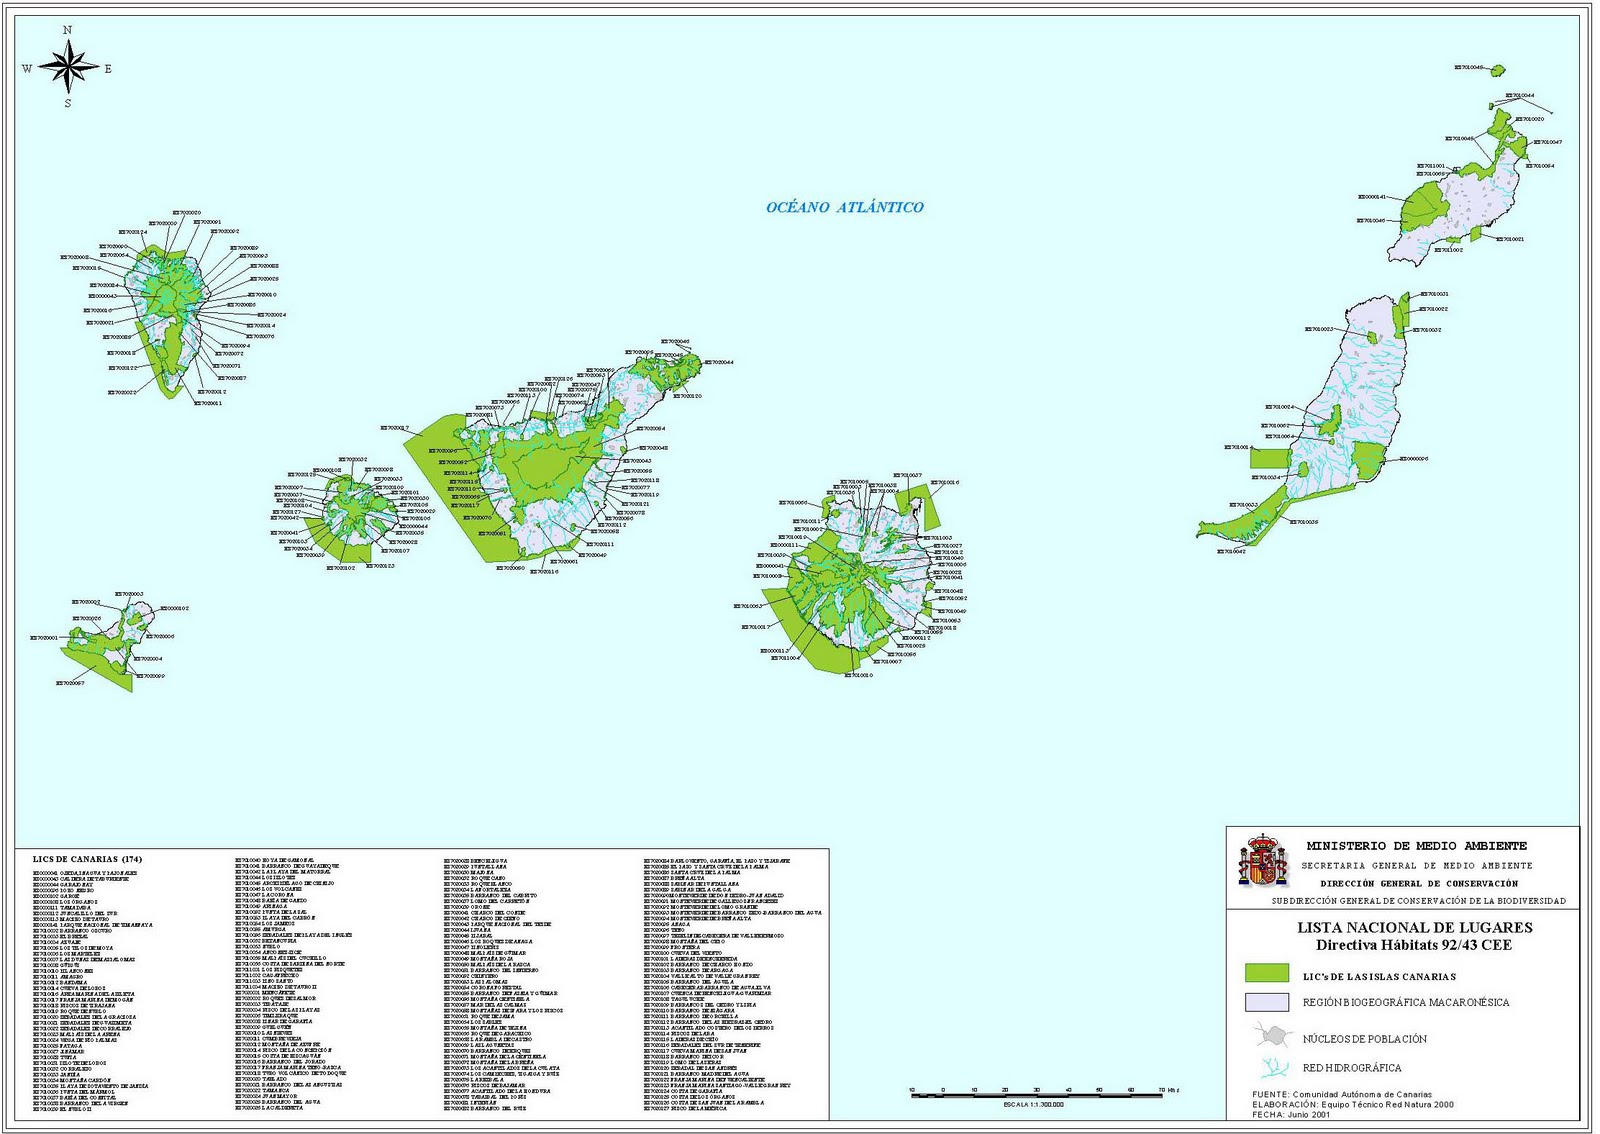 Sites of Community Importance in the Canary Islands 2001